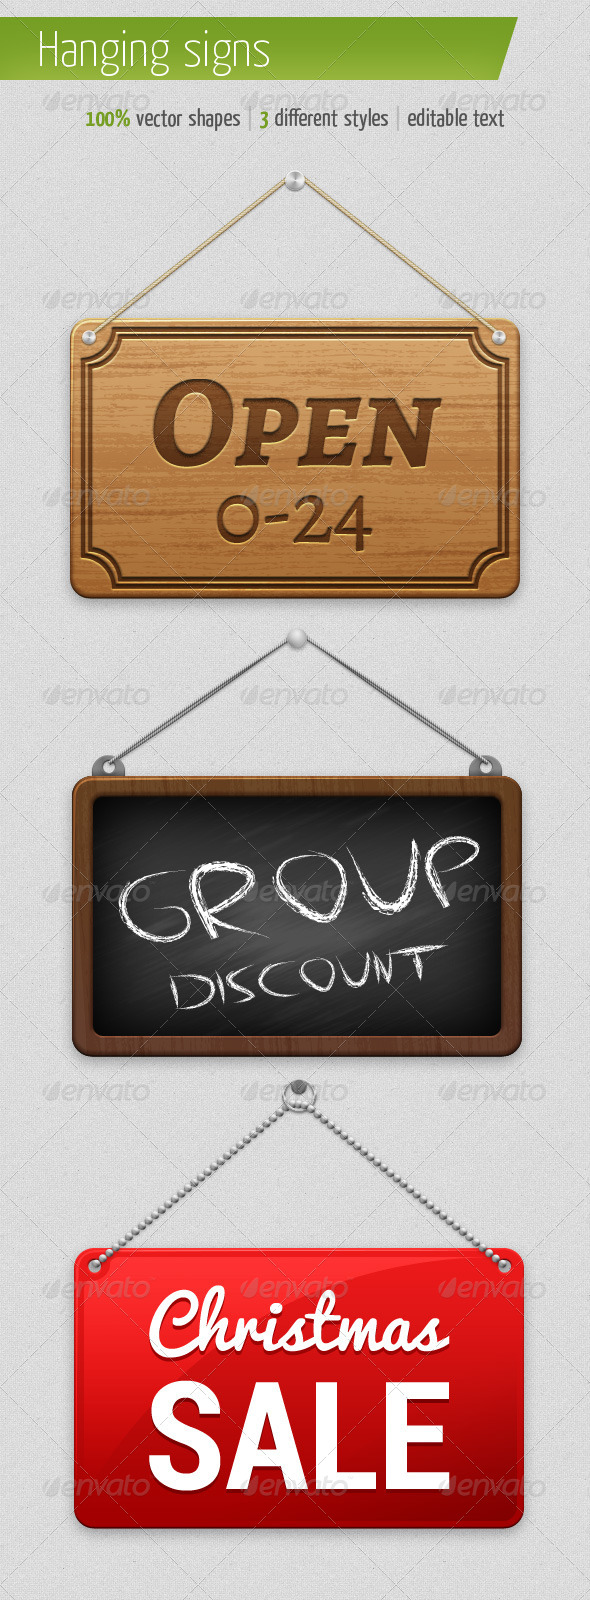 GraphicRiver 3 Different Hanging Signs 5505308